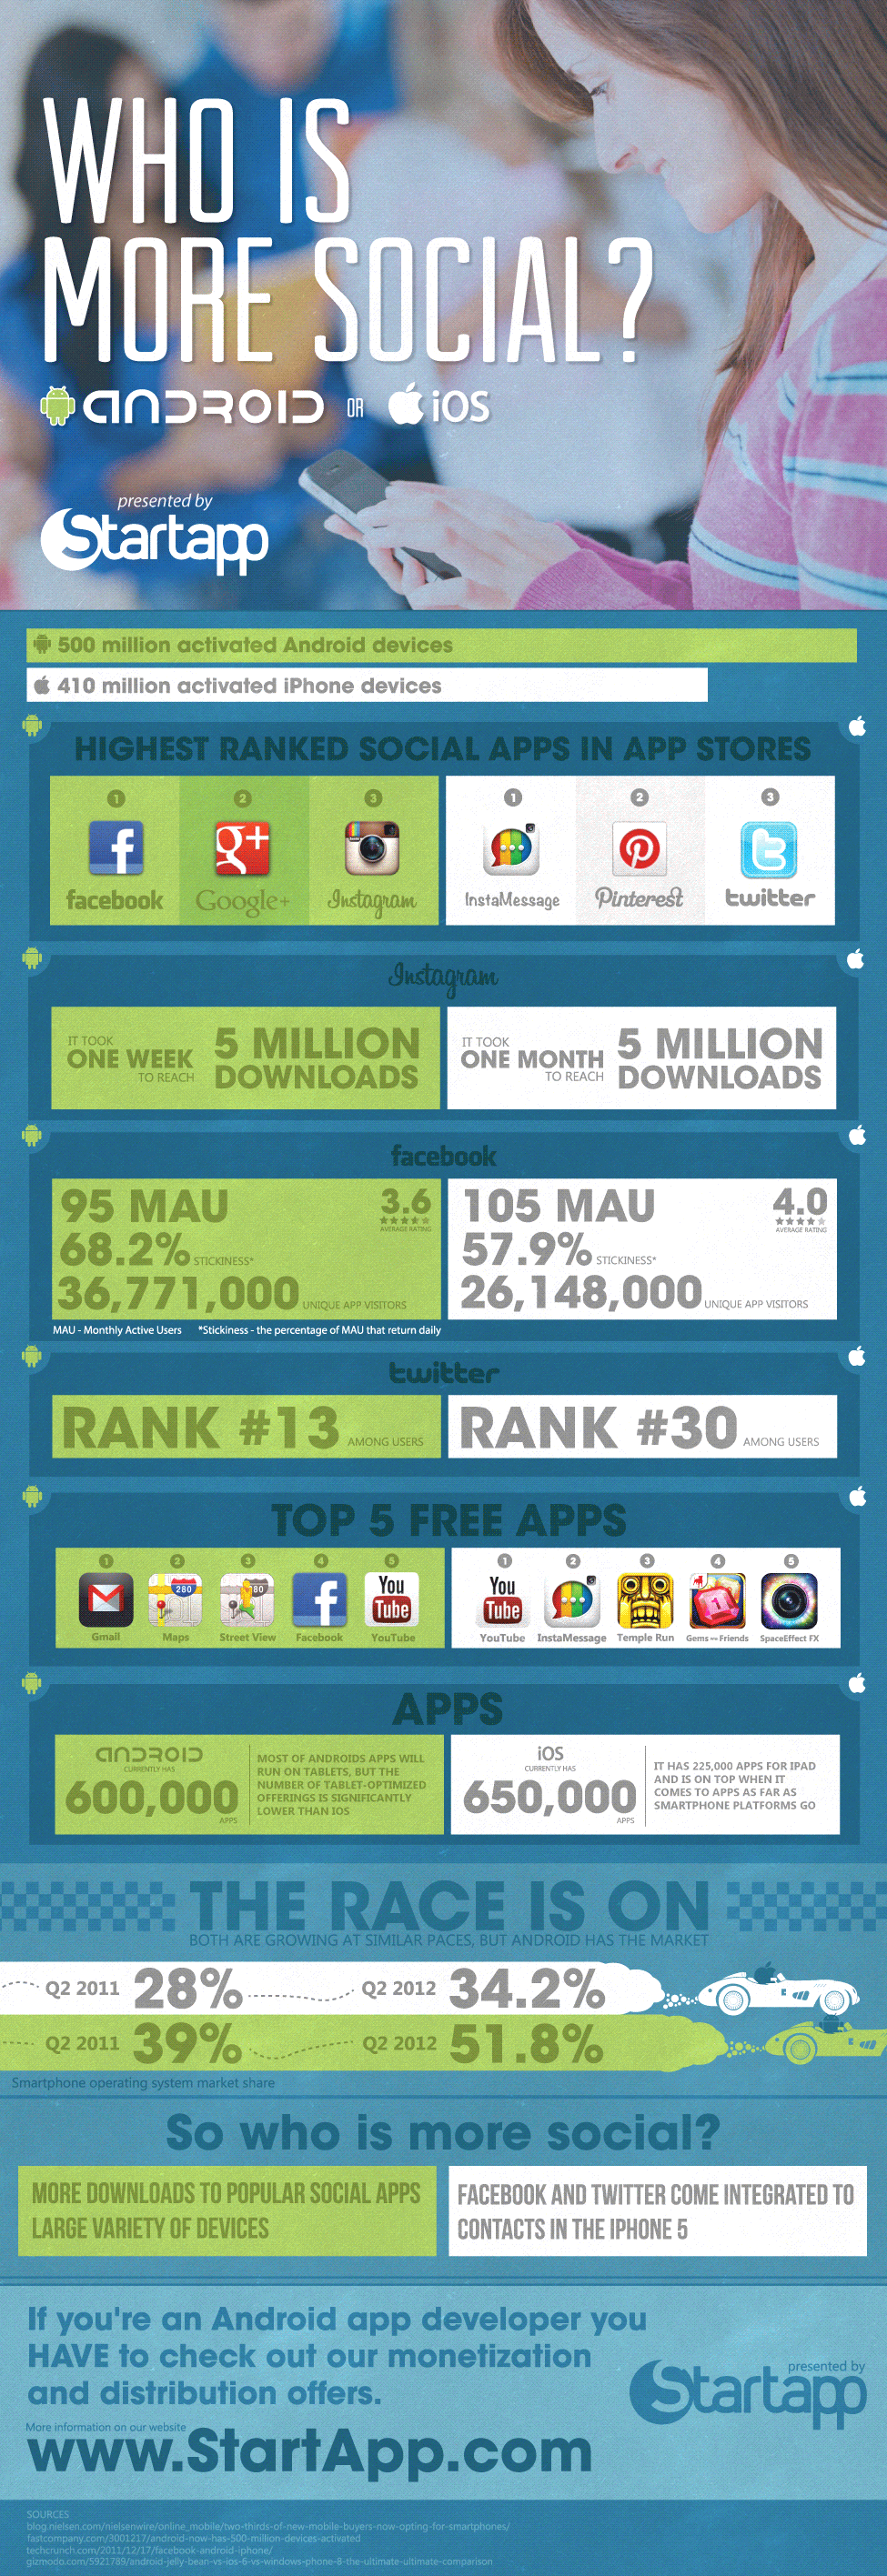 Who is More Social? Android or iOS Users?